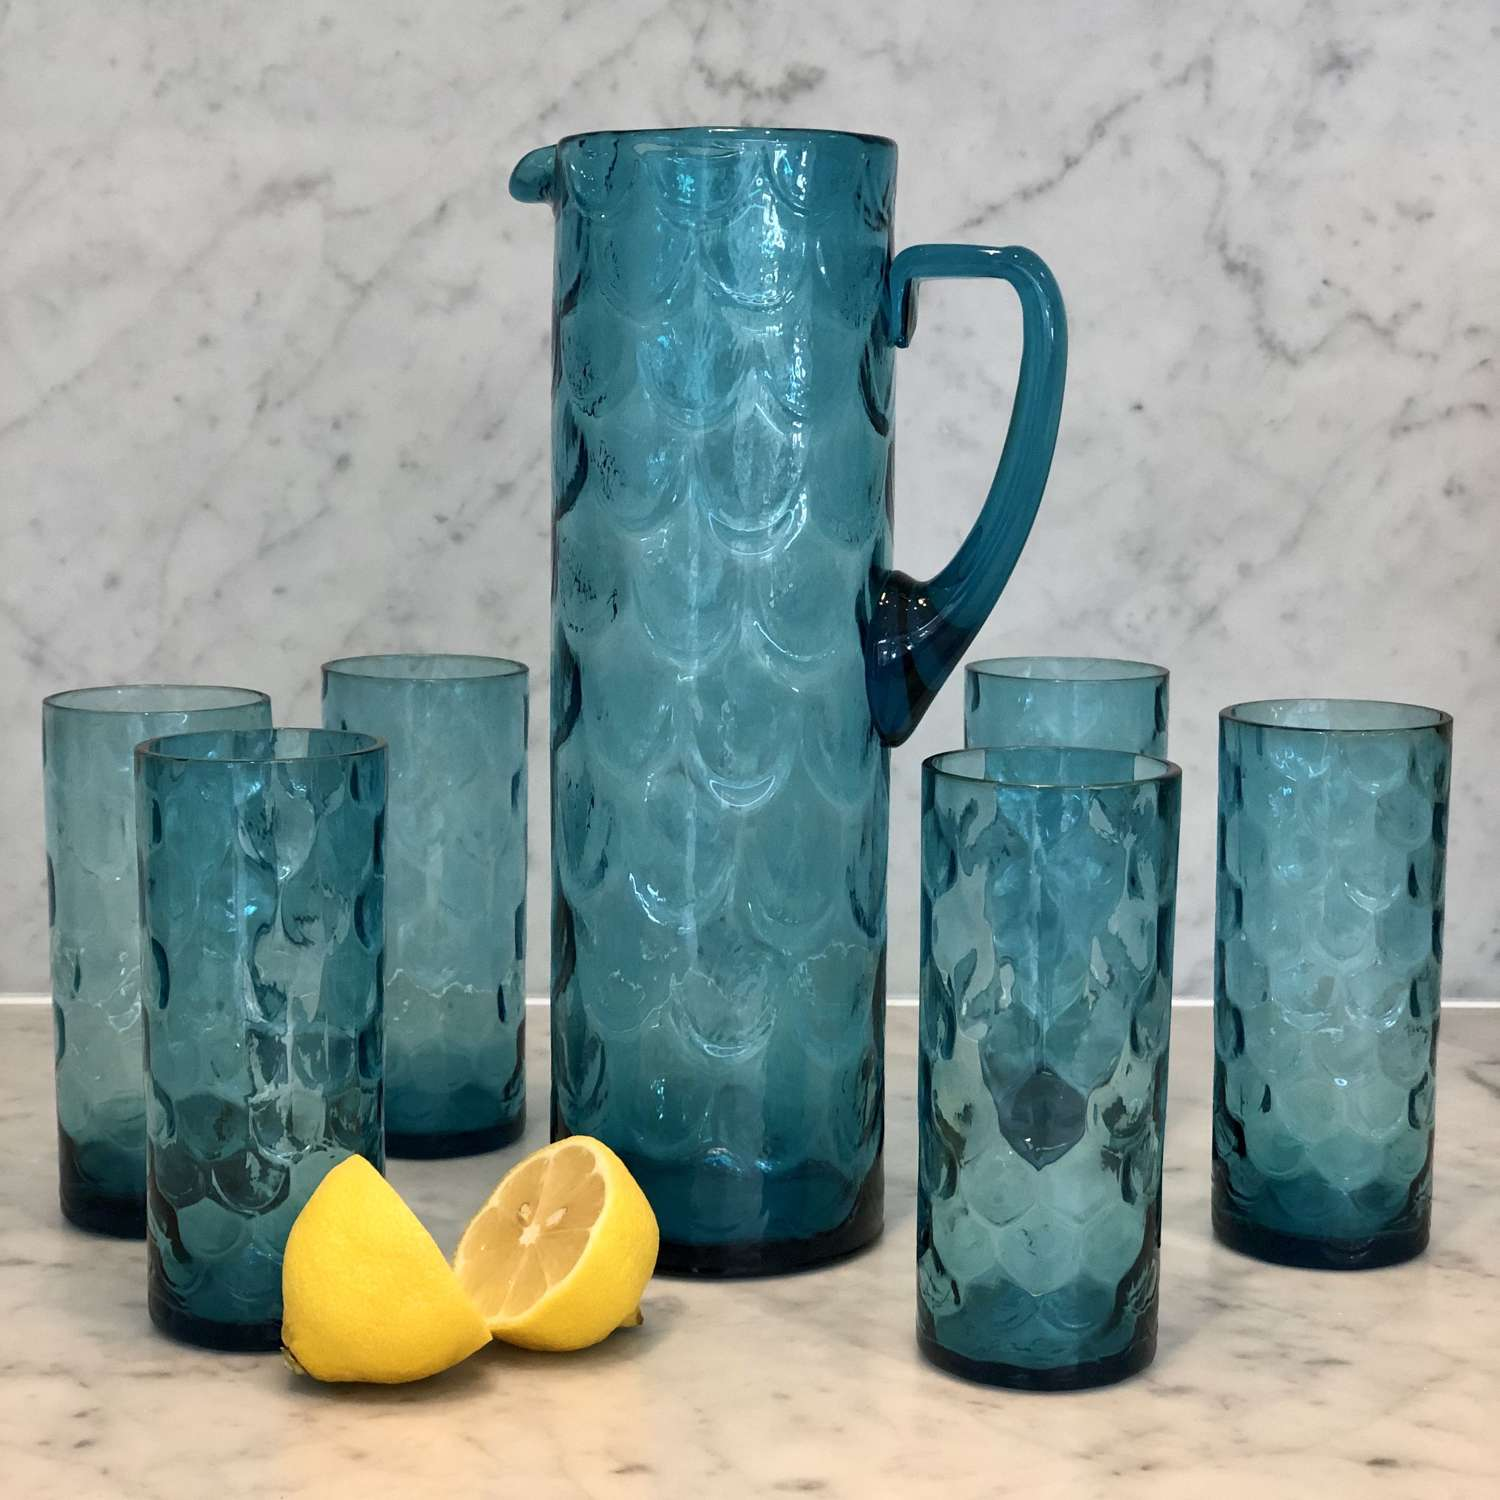 Retro fish scale pattern glass tall jug and tumblers